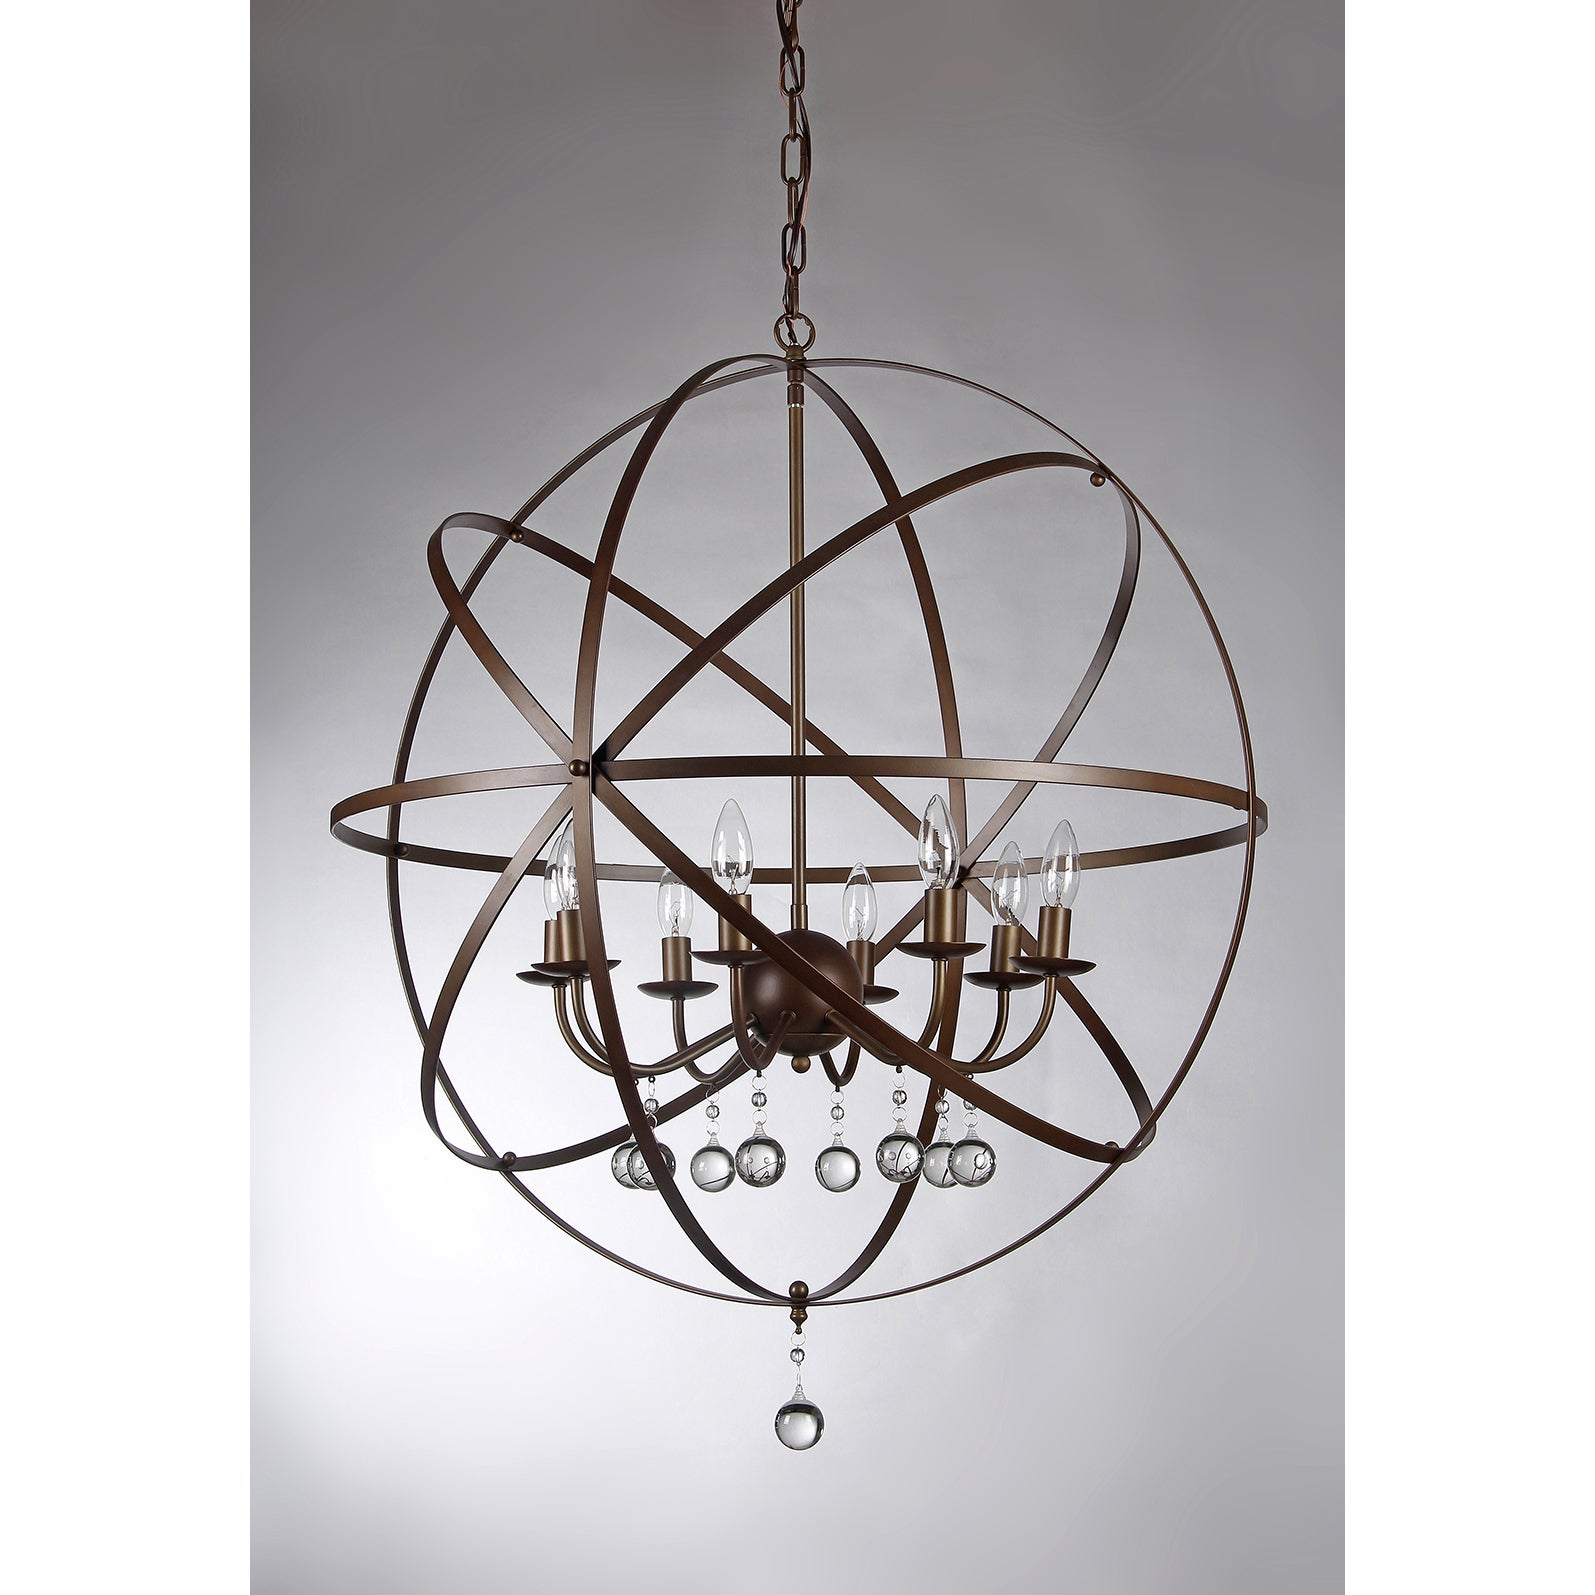 Jossie 8 light Crystal 30 inch Bronze finish Chandelier Free